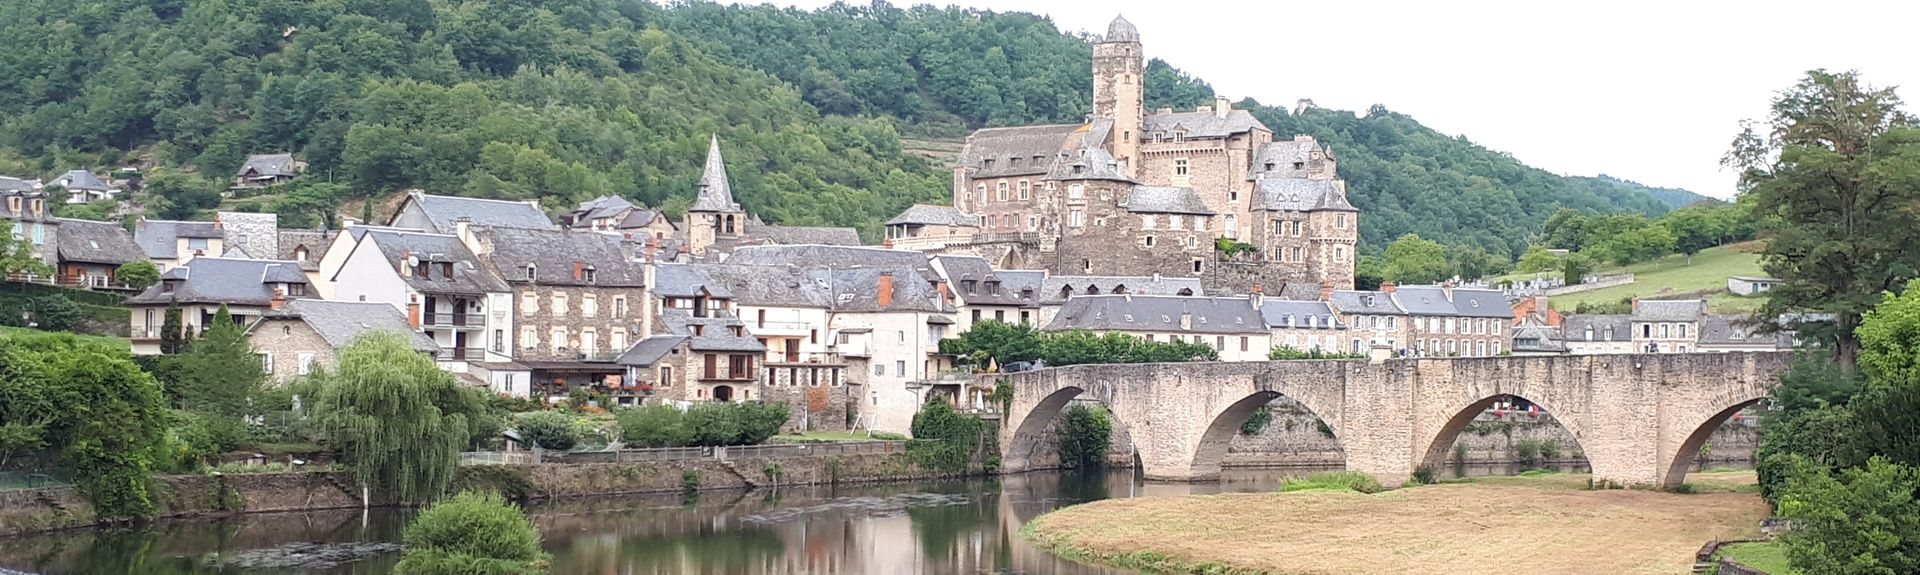 Estaing, Comtal Lot et Truyère, Occitanie, France